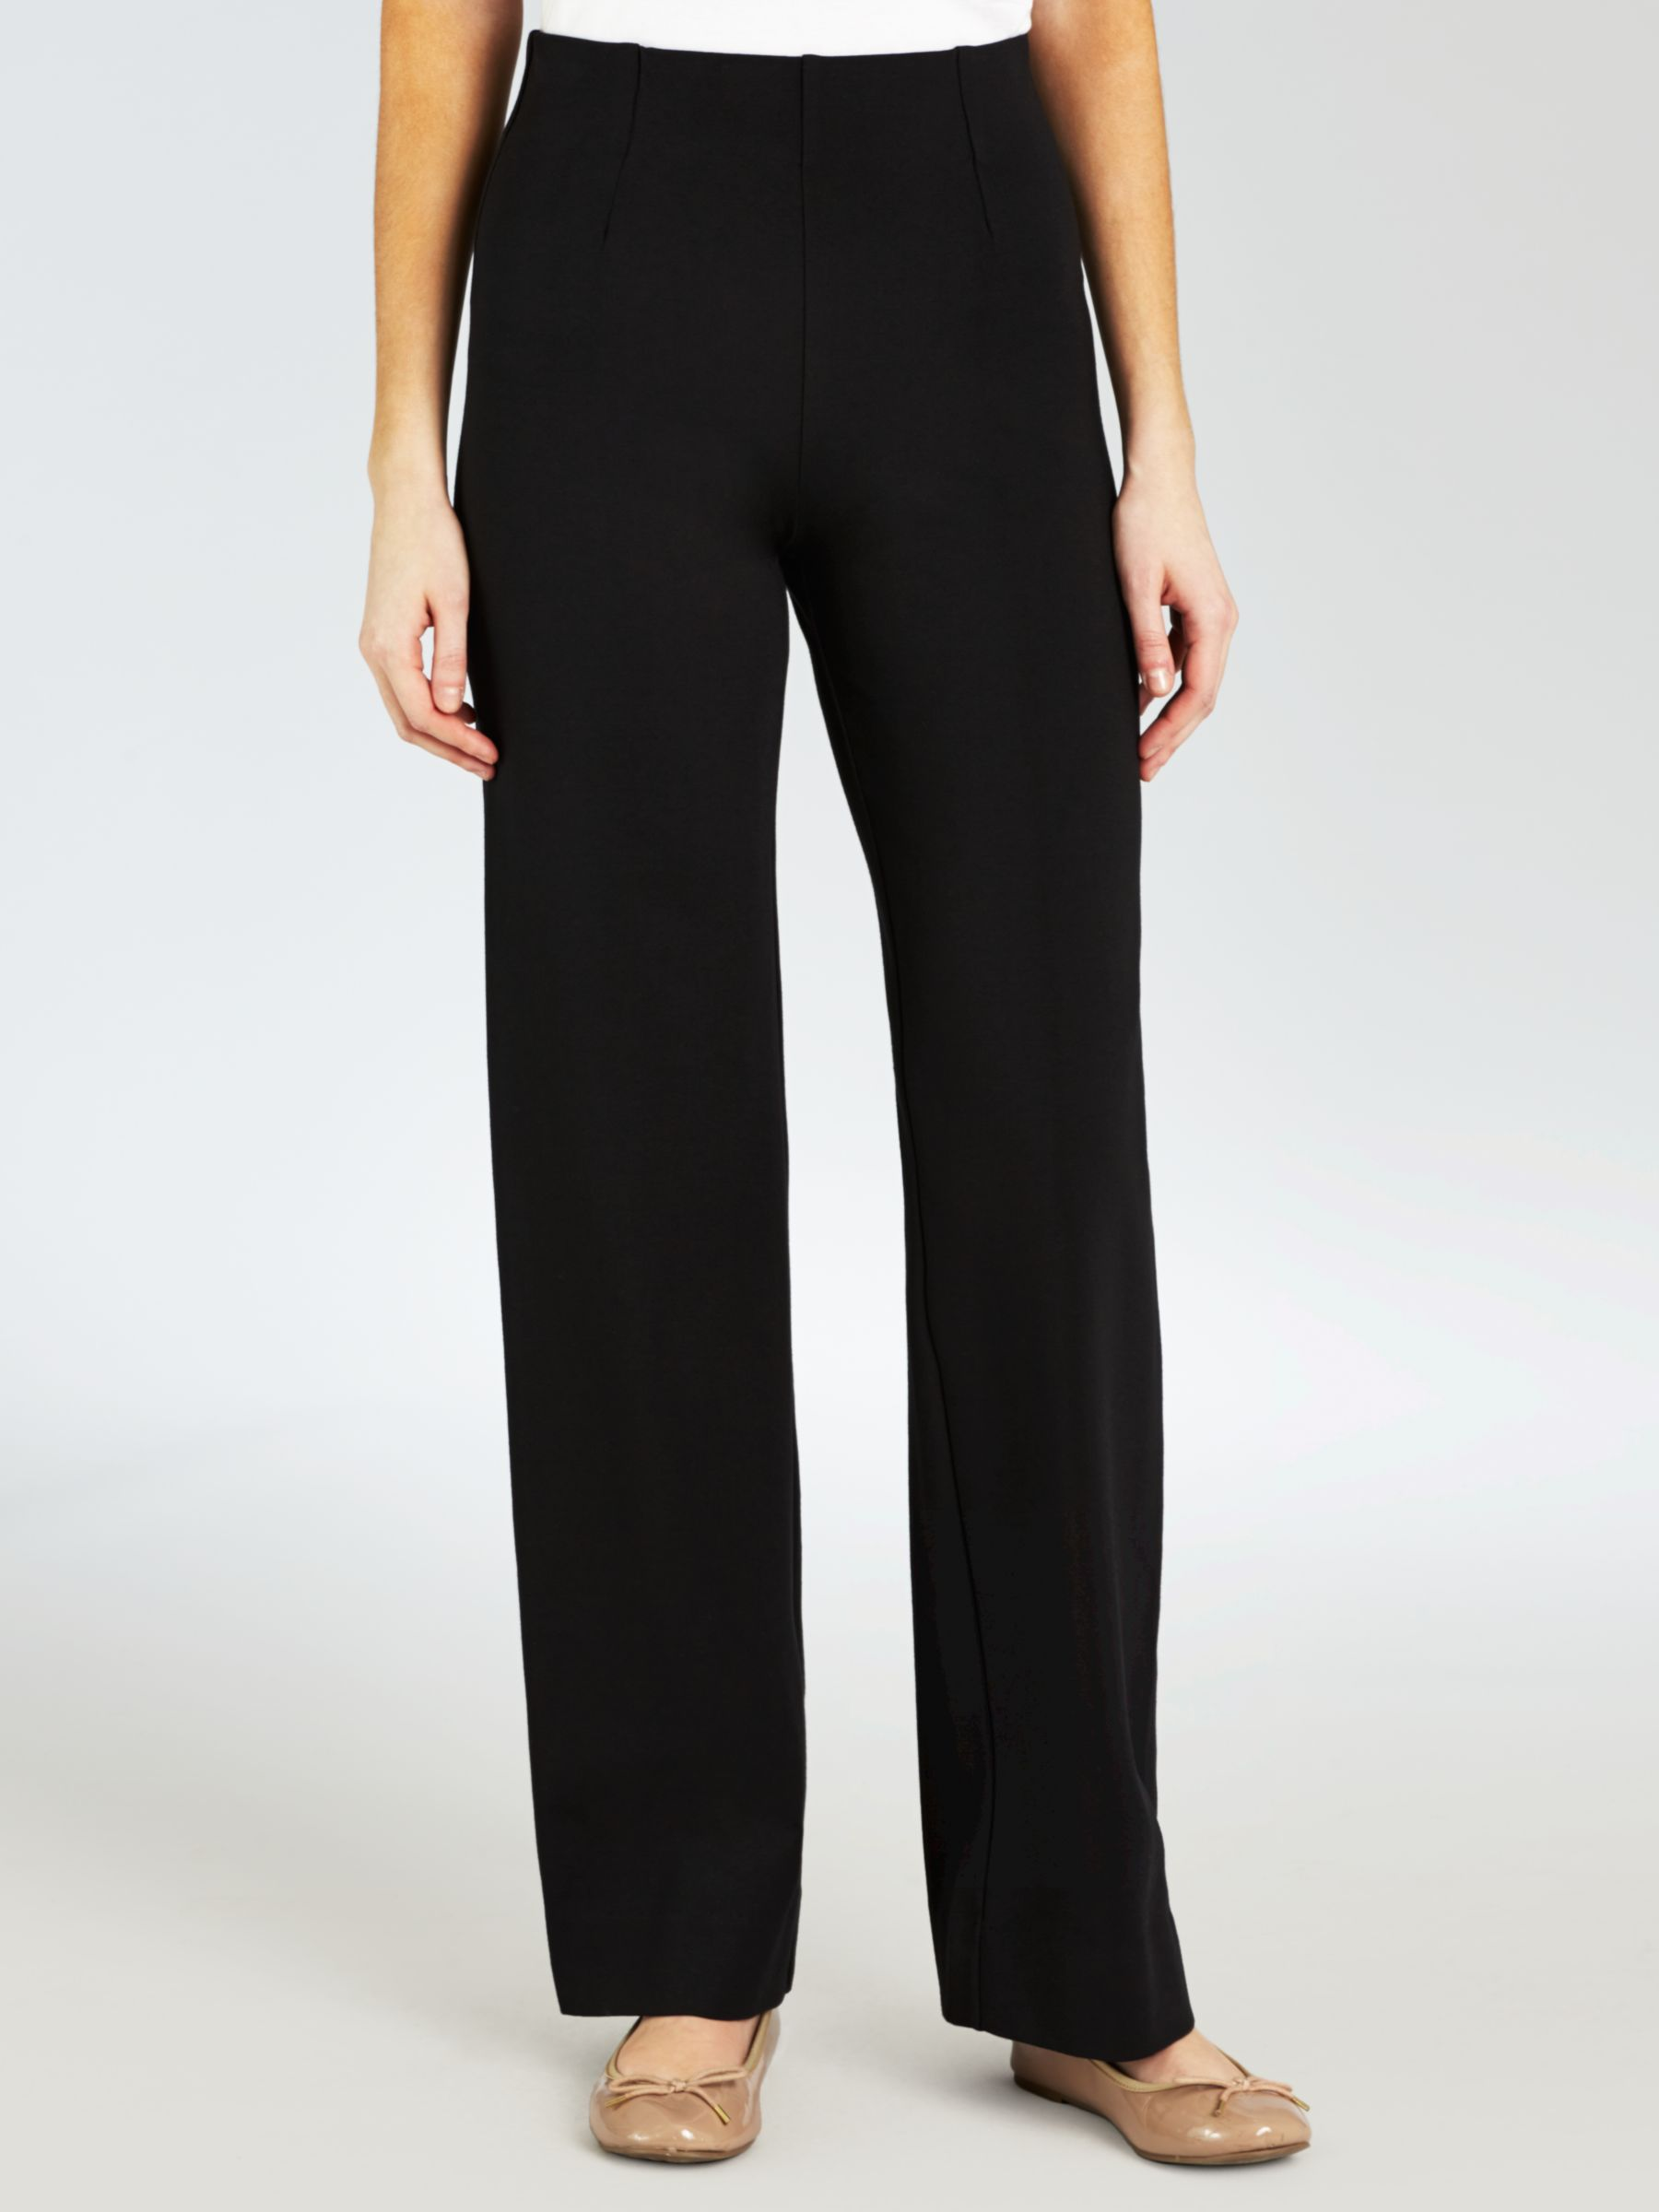 Winser London Winser London Miracle Trousers